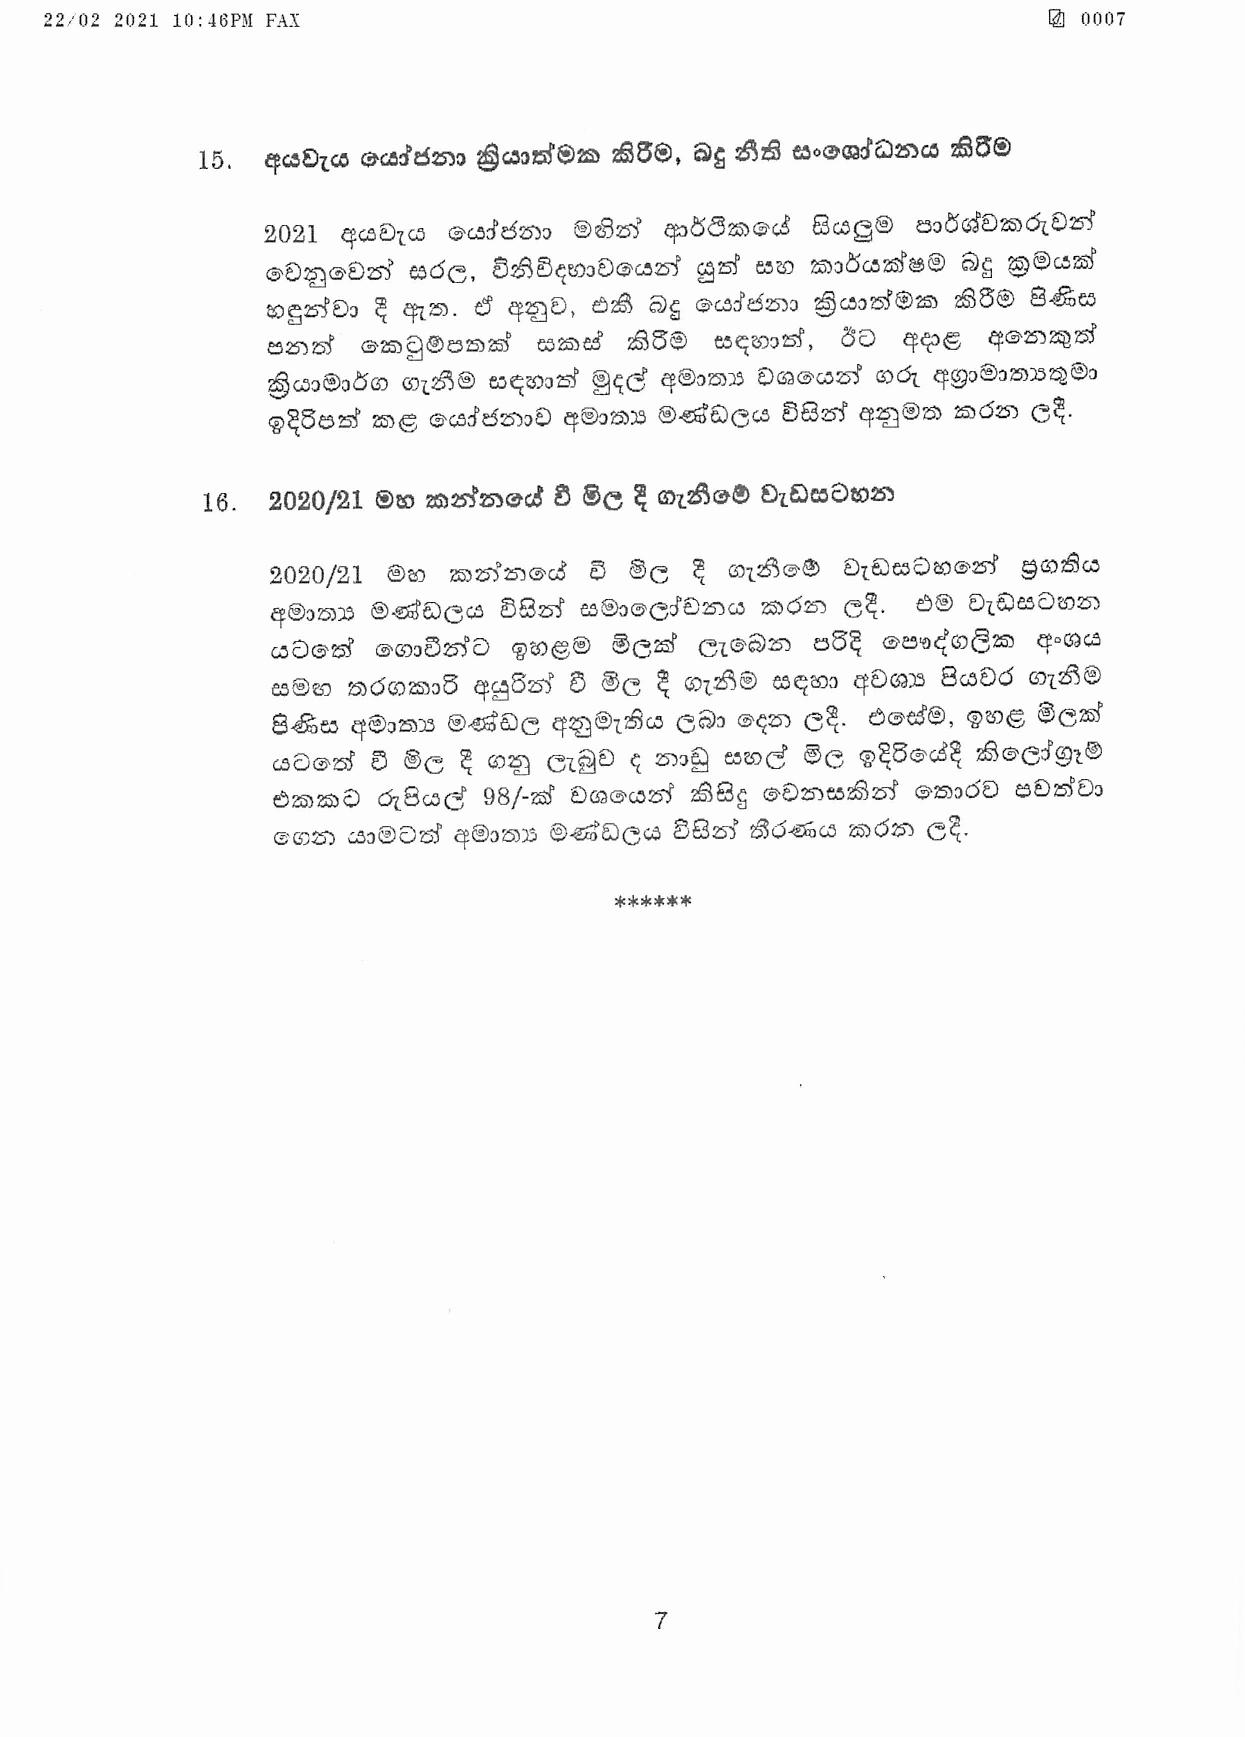 Cabinet Decision on 22.02.2021 page 007